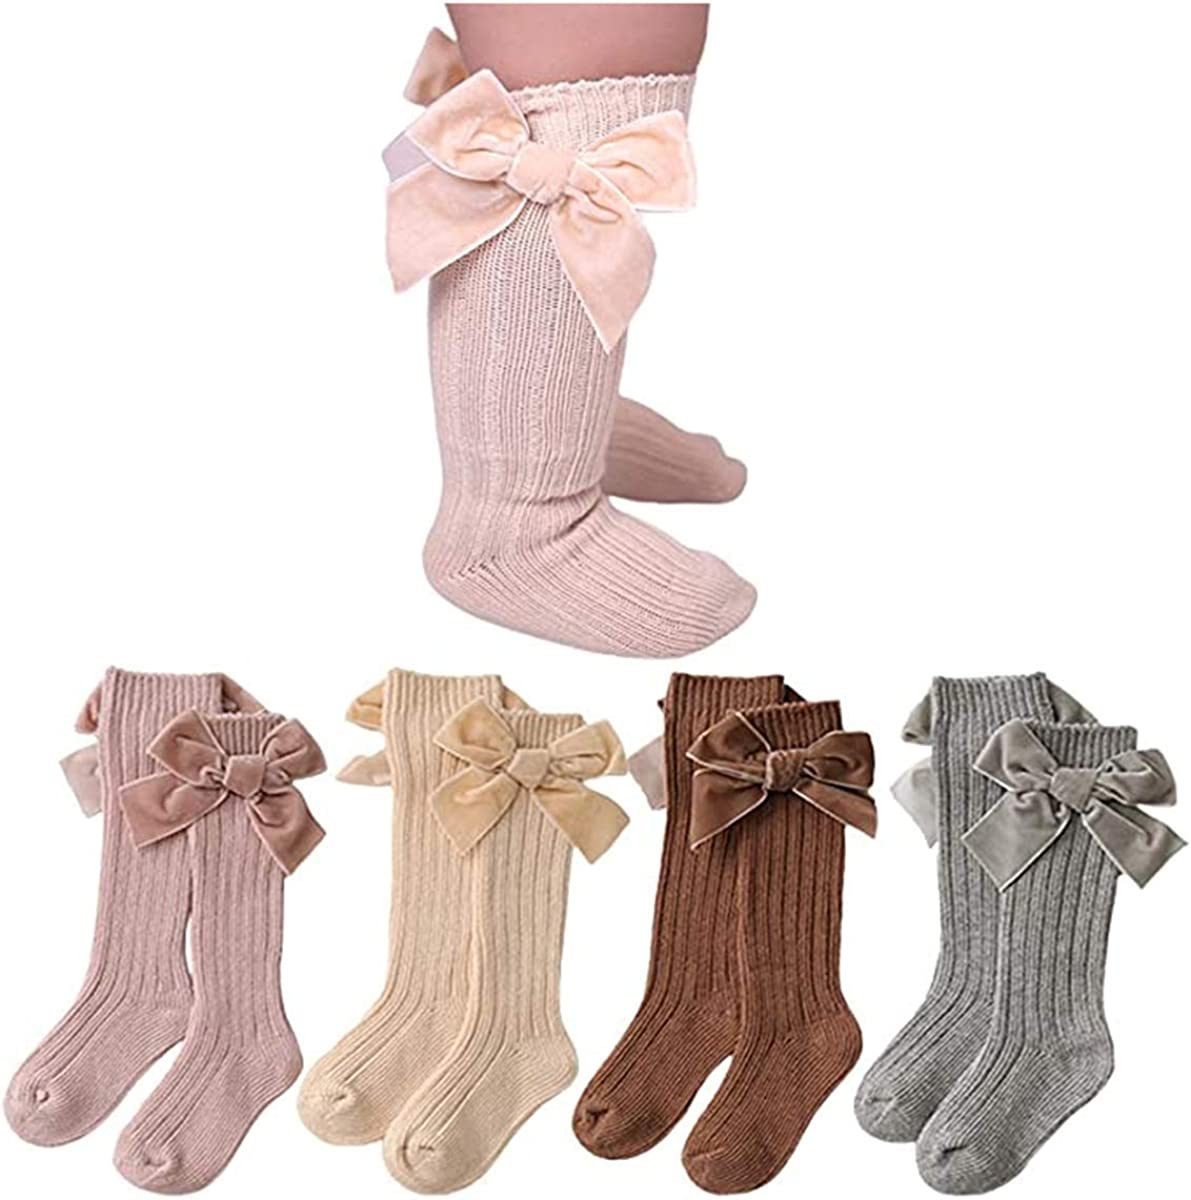 Infant Baby Girls Socks Max 89% OFF Newborn Toddlers Knee Bow High Manufacturer OFFicial shop Knit Cott